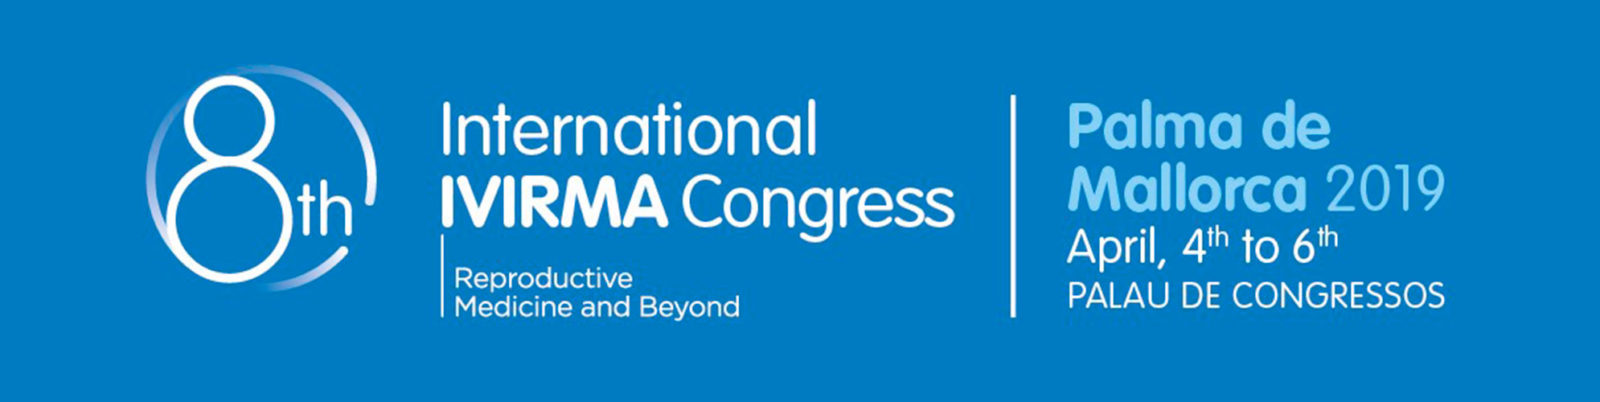 banner international ivirma congress 2019